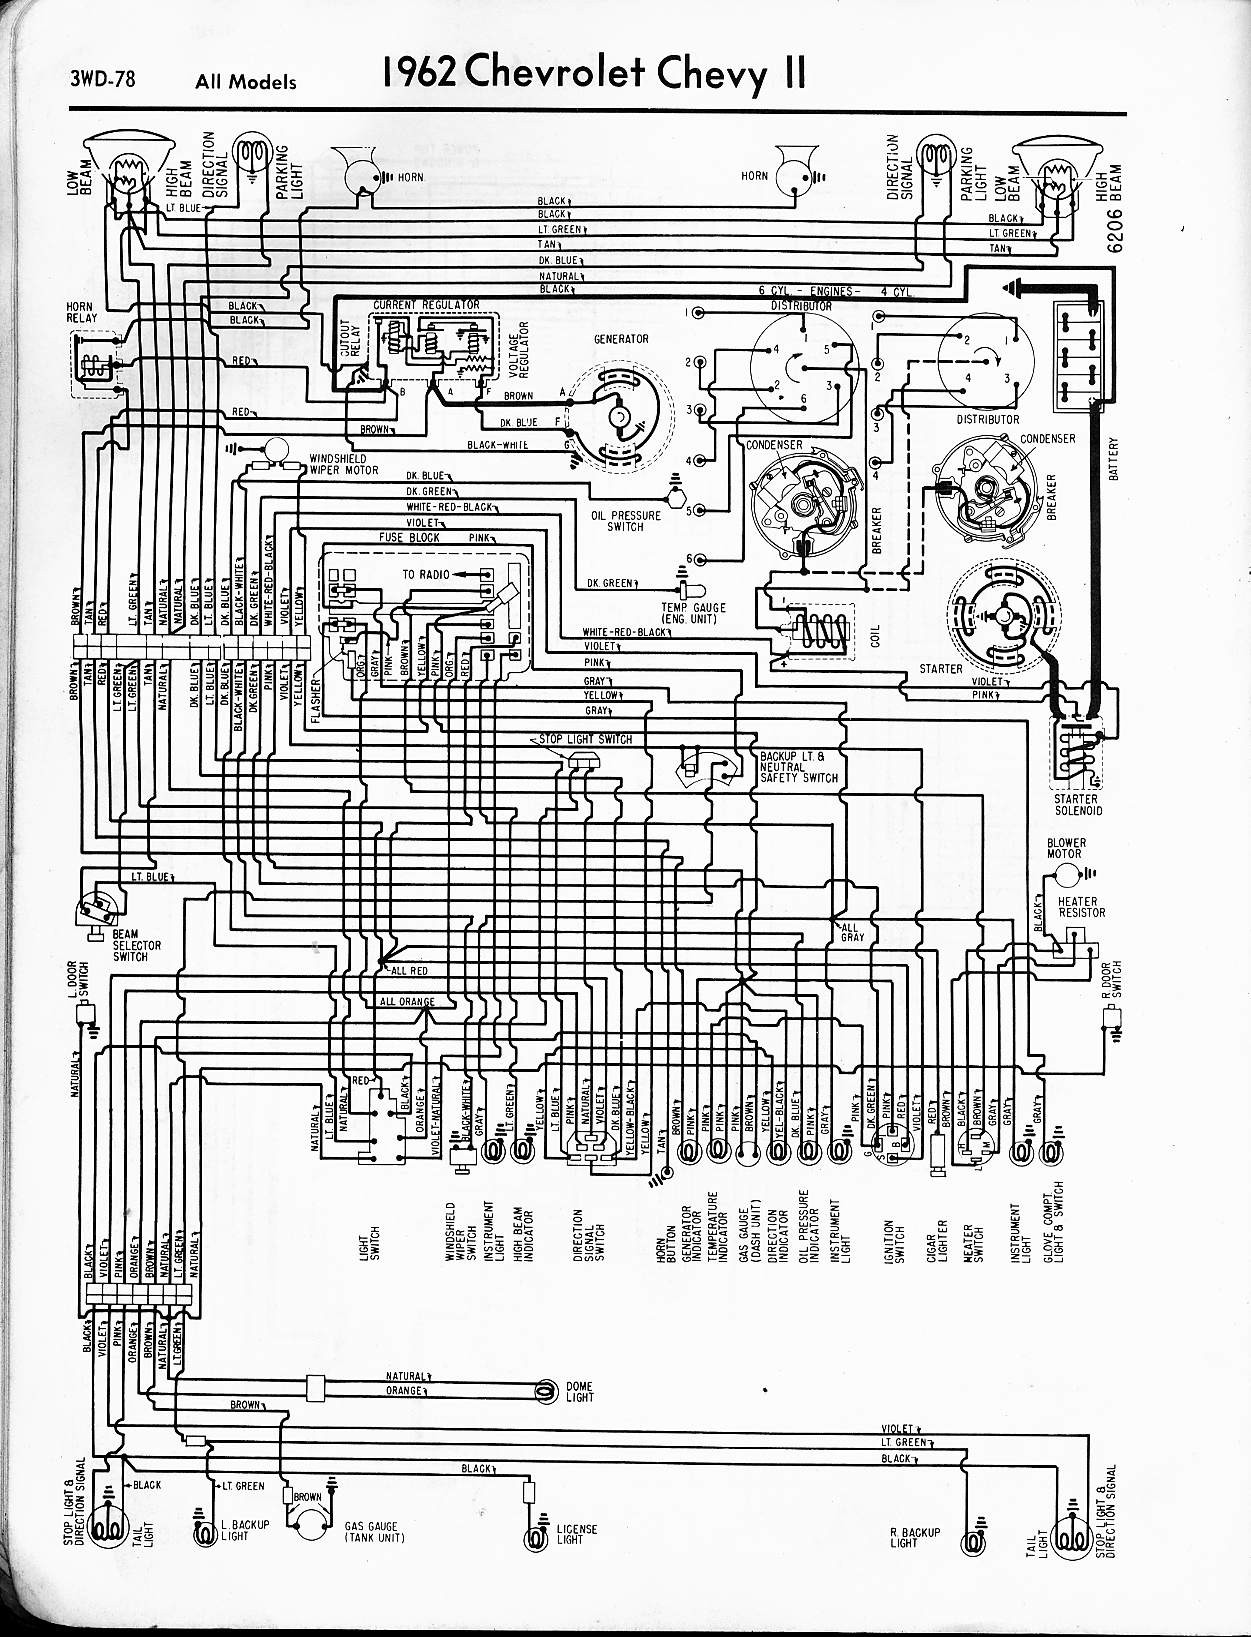 2004 Chevy Impala Engine Diagram 57 65 Wiring Diagrams My